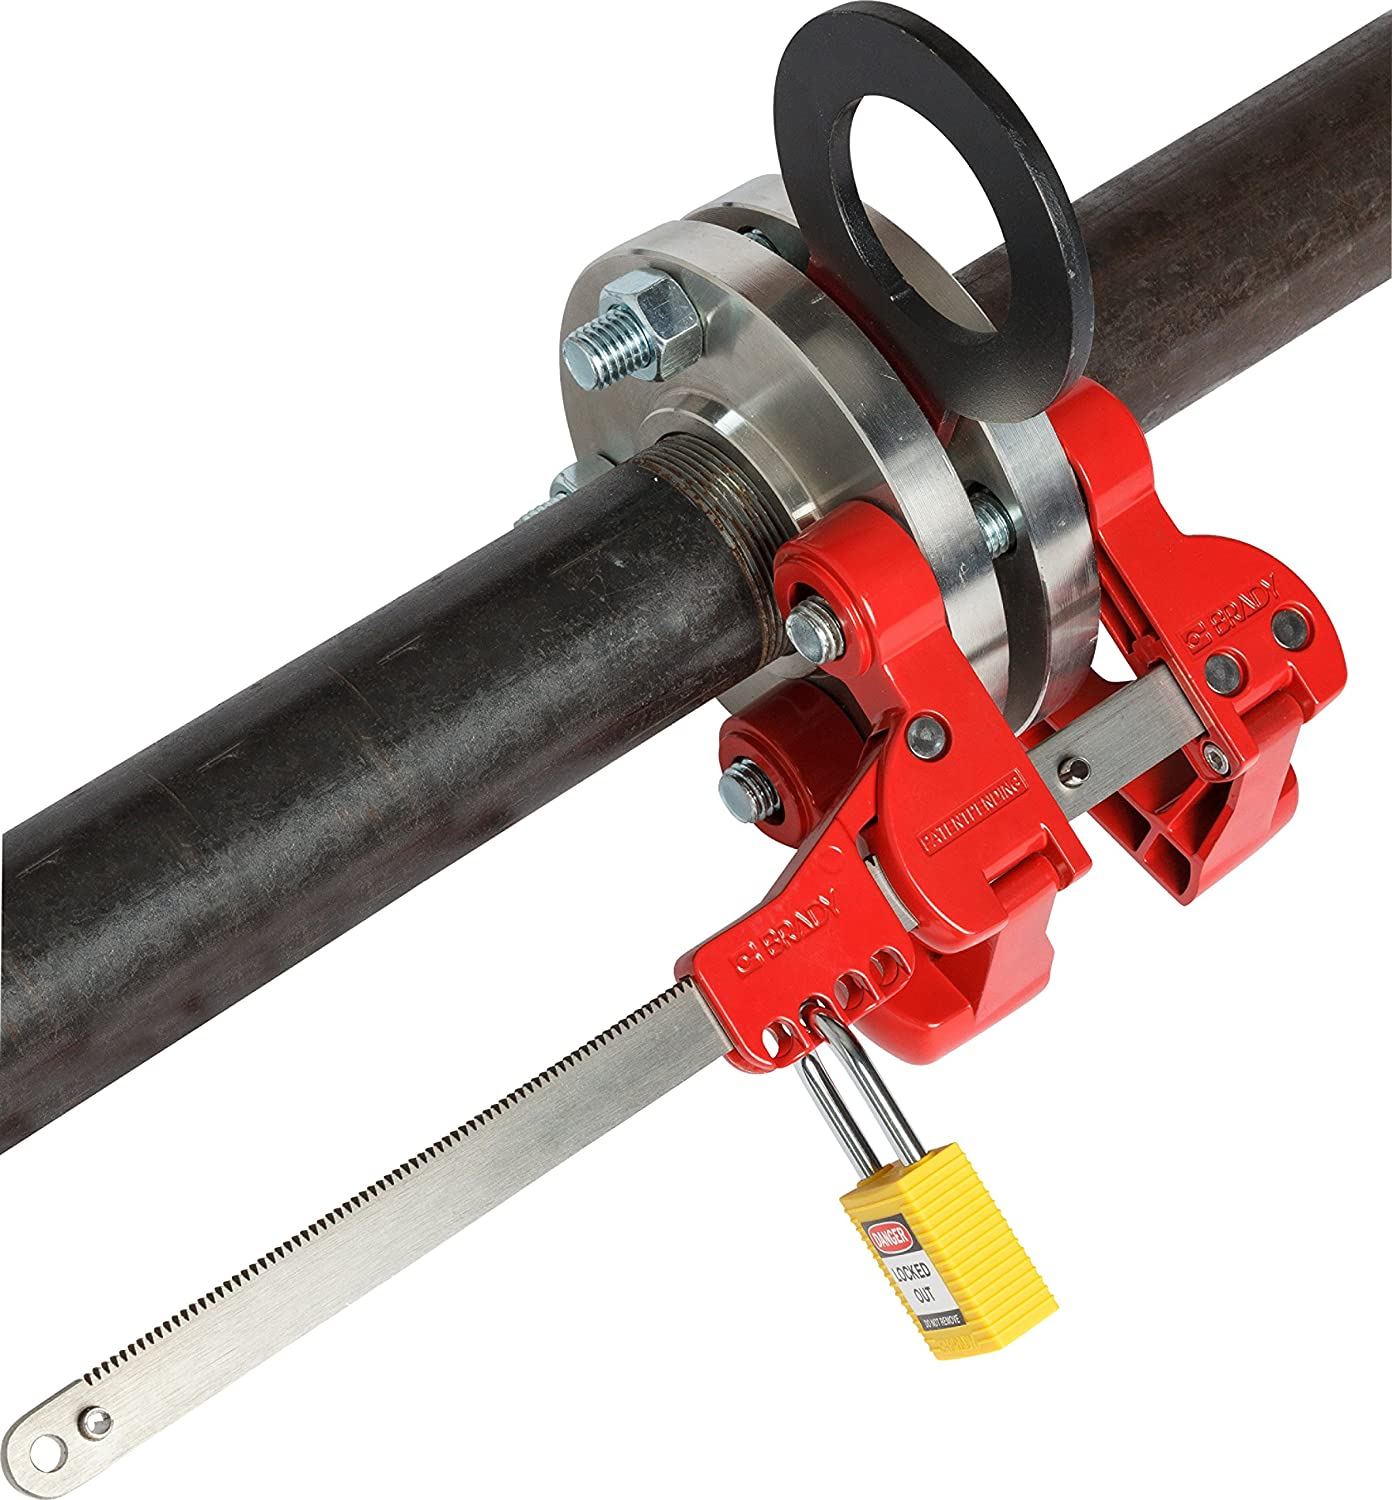 Adjustable Lockout Device Secures Flange Bolts and Pipe Blinds 149229 Brady Pipe Blind Flange Lockout Device 17.75 Height by 8.5 Width